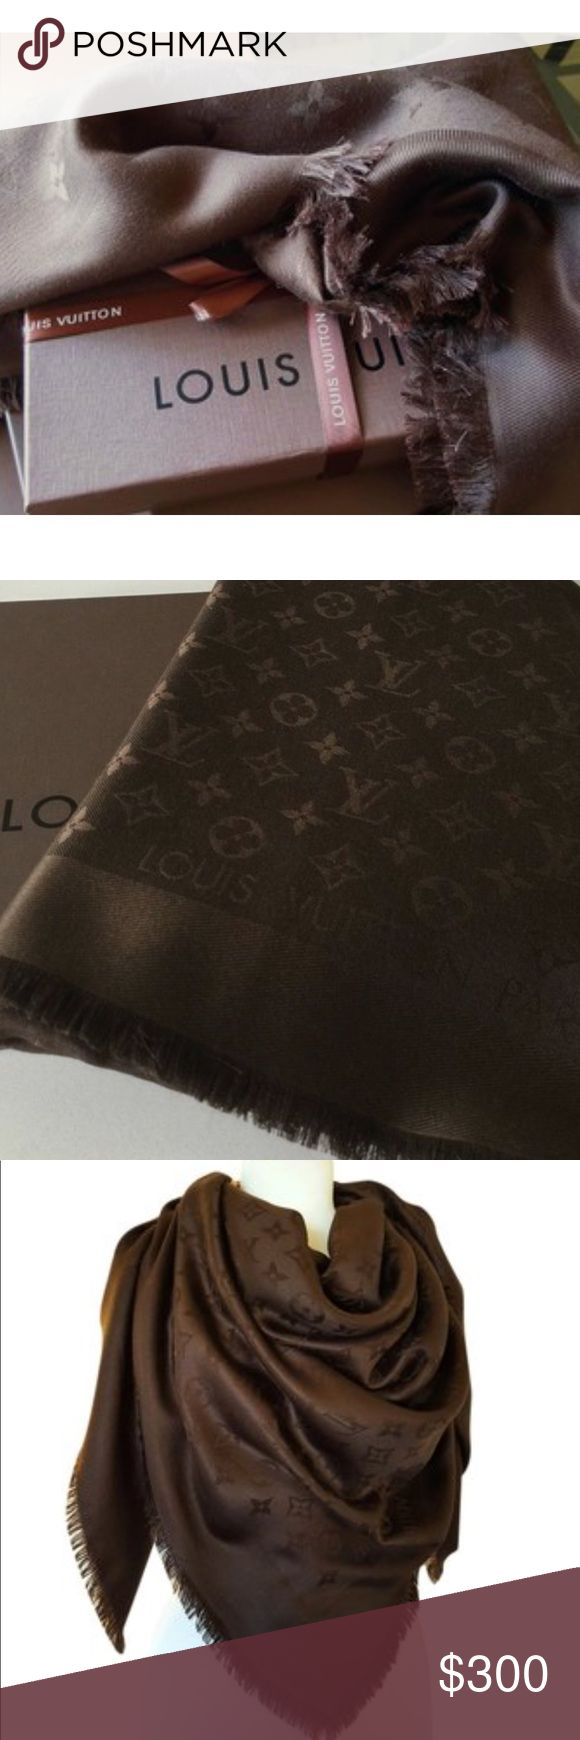 Louis Vuitton Monogram Shine Shawl Louis Vuitton Monogram Shine Shawl in Chocolate Brown.            I bought this shawl many years ago from the Dallas store. I have worn it only one time to dinner. I'm still not sure if I want to sell it, but I may if someone is truly interested. Please ask any questions. No snags. Pet free smoke free home. Thank you💓 Comes with the original Louis Vuitton scarf box and tissue paper  if requested. Louis Vuitton Accessories Scarves & Wraps